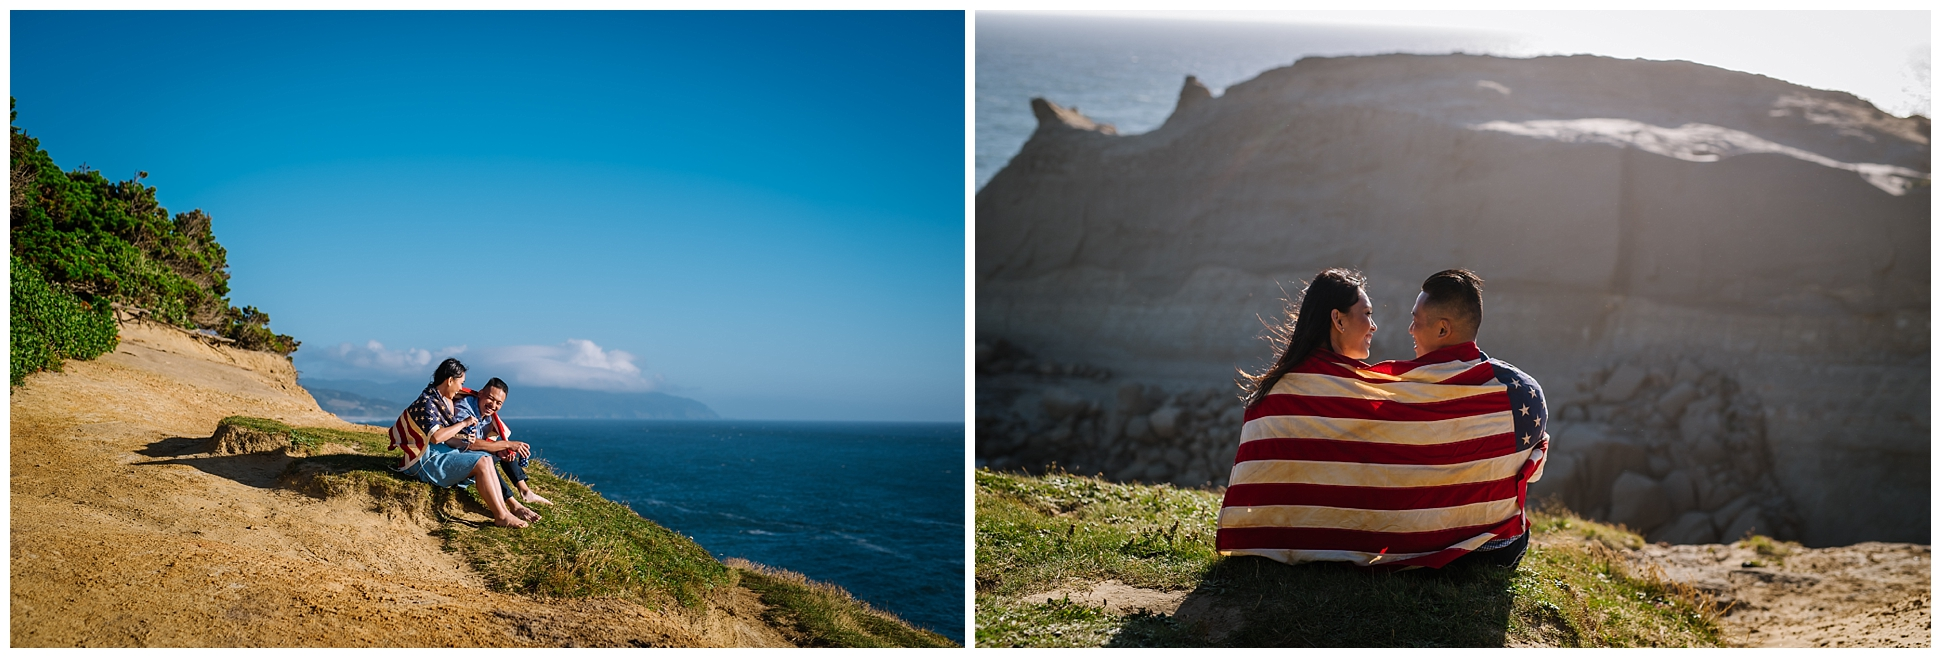 Cape-kiwanda-bridal-portrait-destination-wedding-photographer_0010.jpg